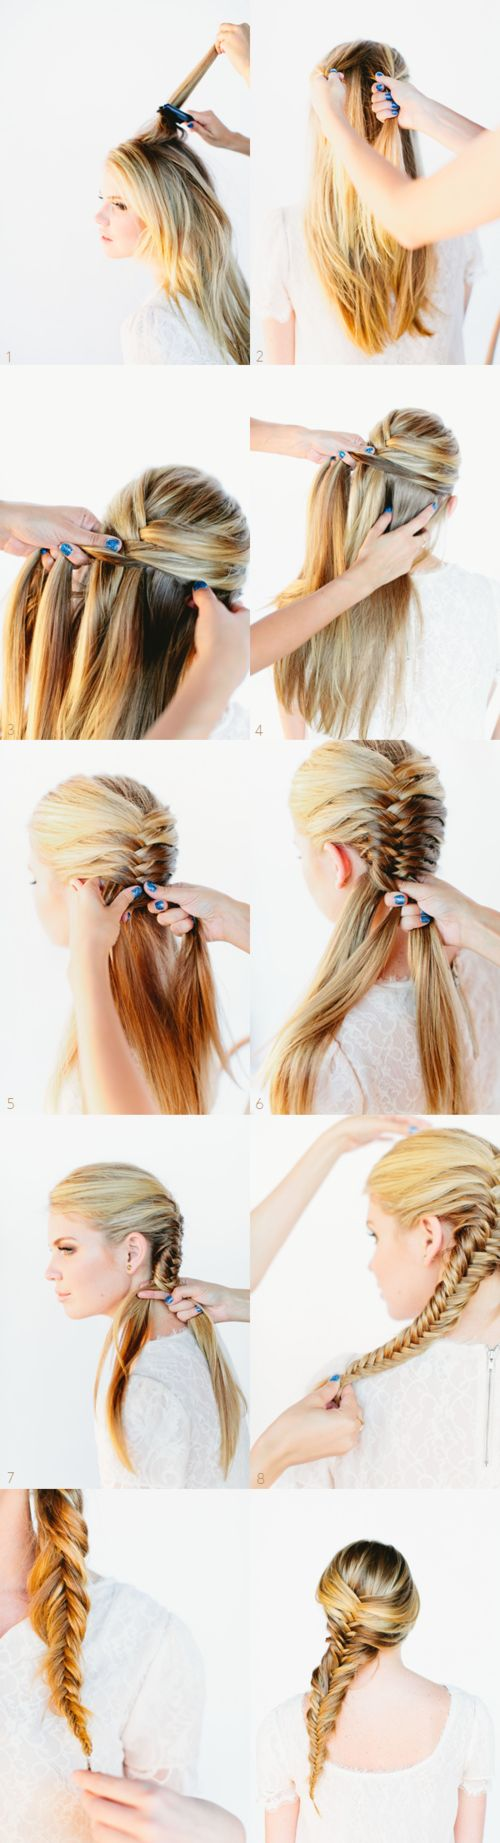 Long hair styles Get the look today at Silvana's Day Spa & Salon 102 East Main Street Forestville, CT 06010 860-589-7249 #hair #weddinghair #wedding: Fish Tail, Hairstyles, Hair Styles, Hair Tutorial, French Fishtail Braid, Fishtail Braids